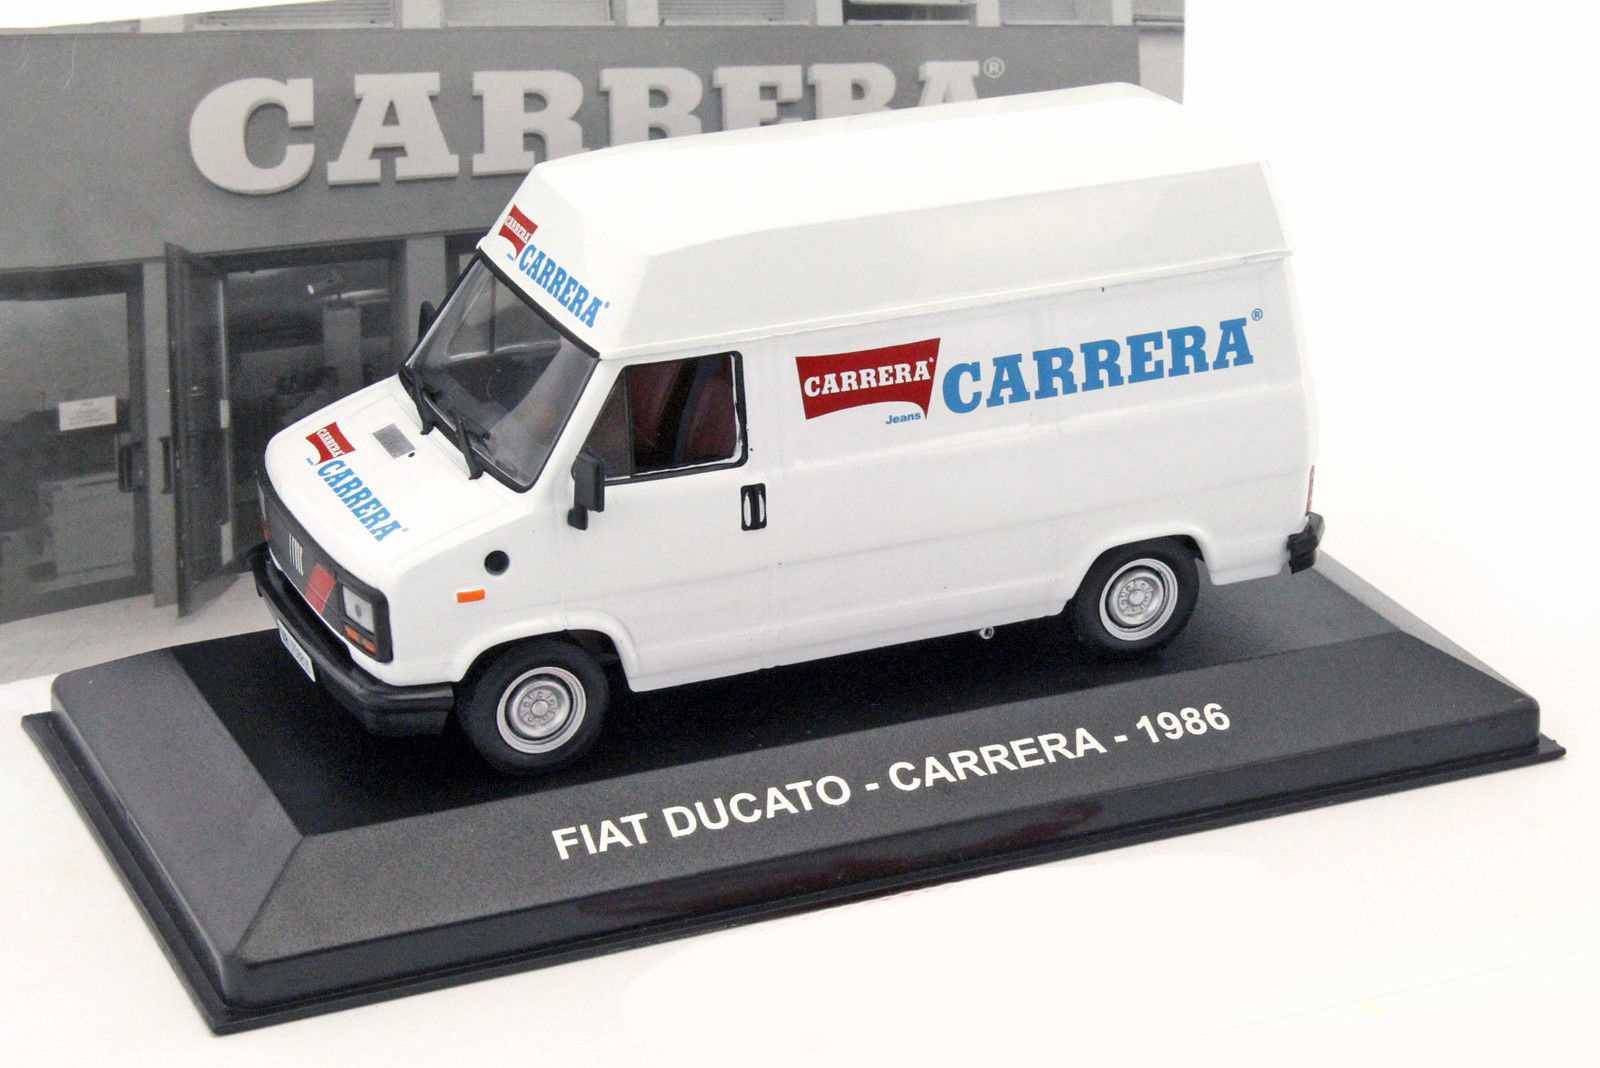 neu fiat ducato i typ 280 1982 1990 carrera 1986 weiss. Black Bedroom Furniture Sets. Home Design Ideas